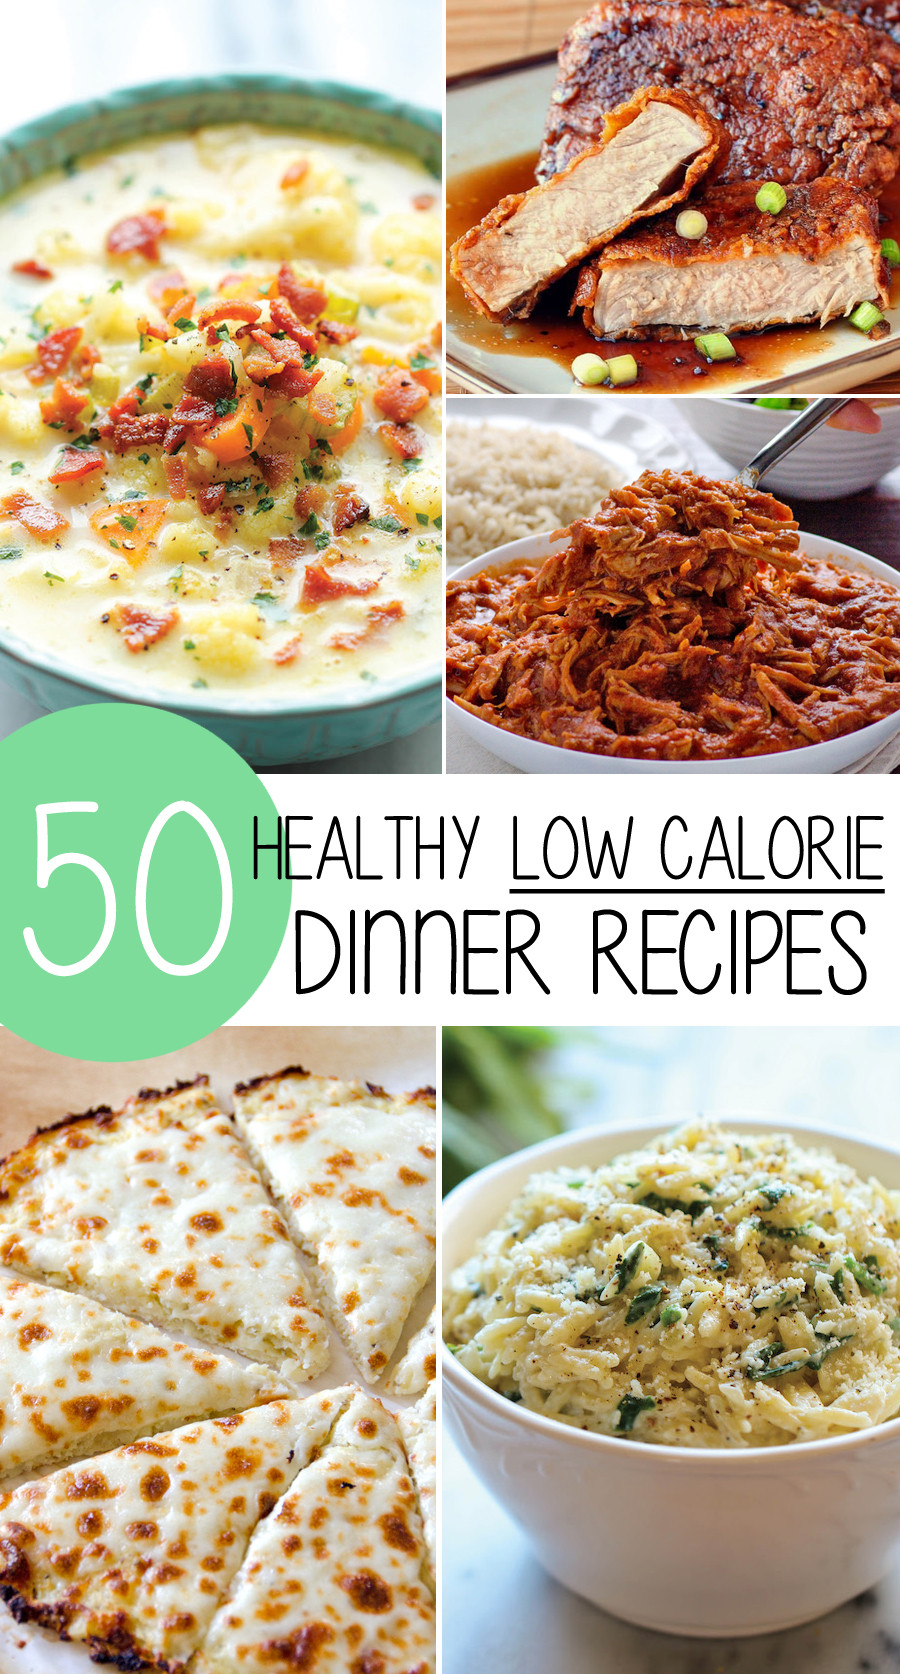 Low Calorie Recipes  50 Healthy Low Calorie Weight Loss Dinner Recipes